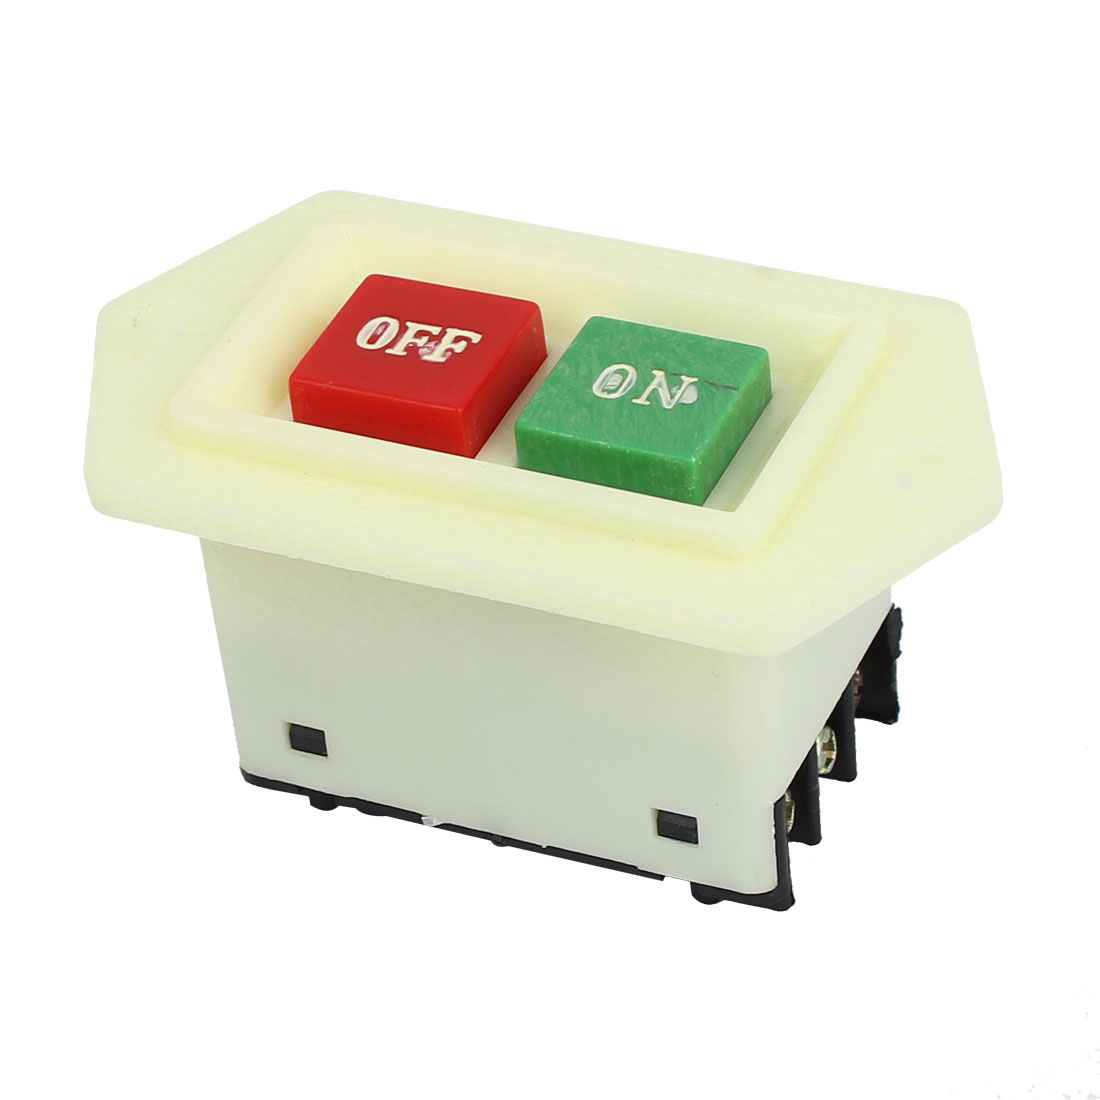 LC3-5 5A 380V 220V ON/OFF 6 Contacts Terminals Triphase Power Push Button Switch